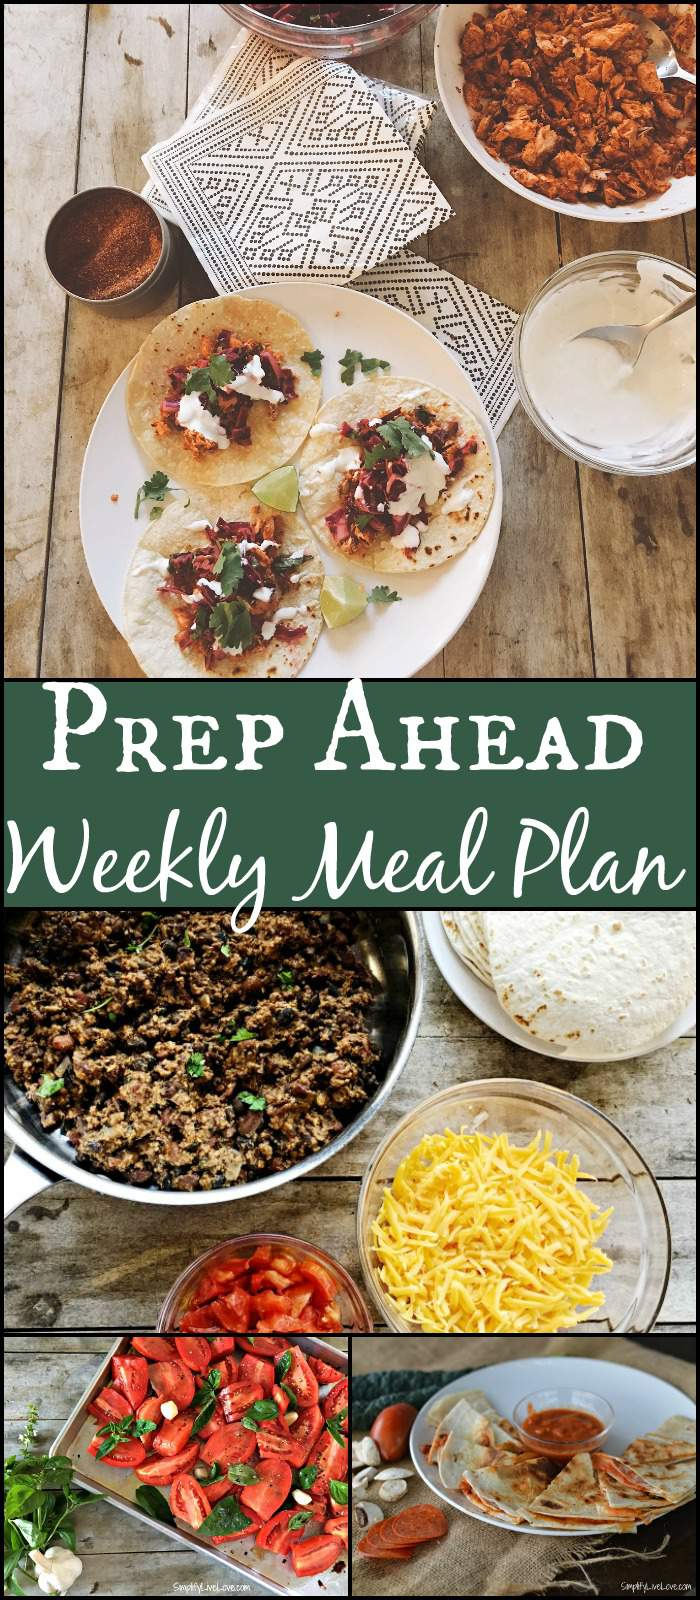 This prep ahead weekly meal plan will help you get healthy, from-scratch meals on the table in a hurry. It's perfect for fall and delicious!